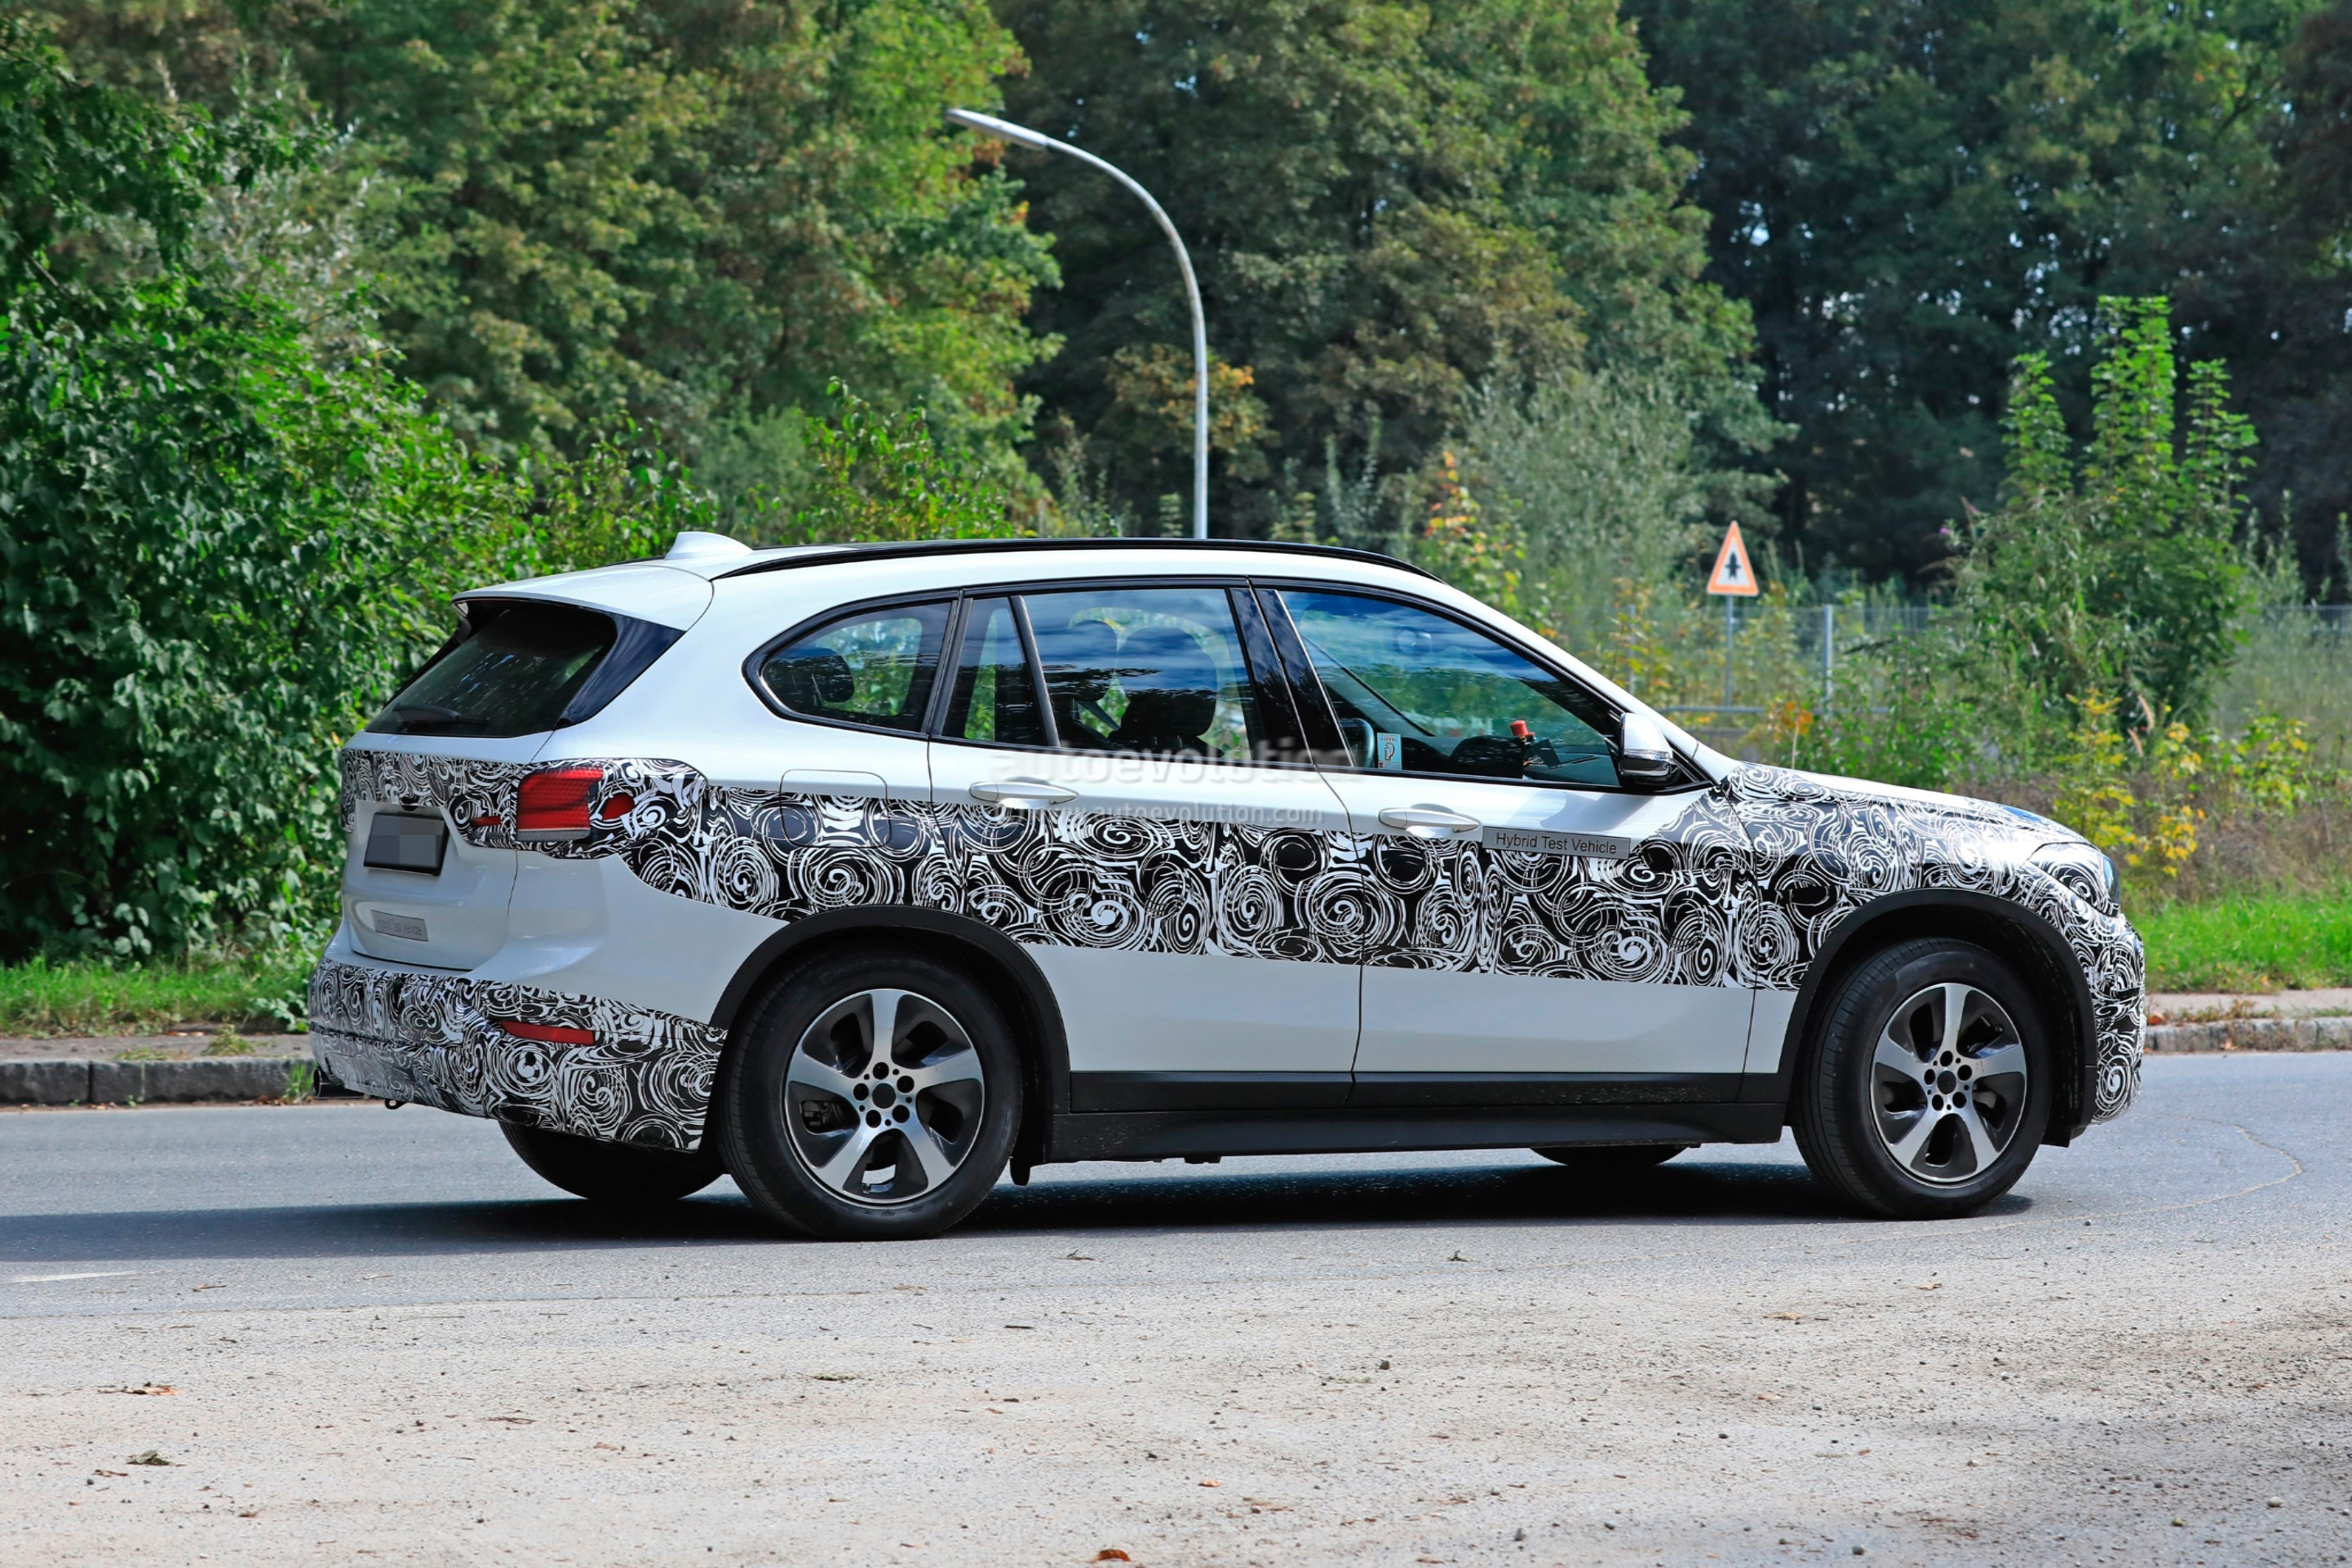 2020 bmw x1 xdrive 25e iperformance spied with eco friendly wheels autoevolution. Black Bedroom Furniture Sets. Home Design Ideas